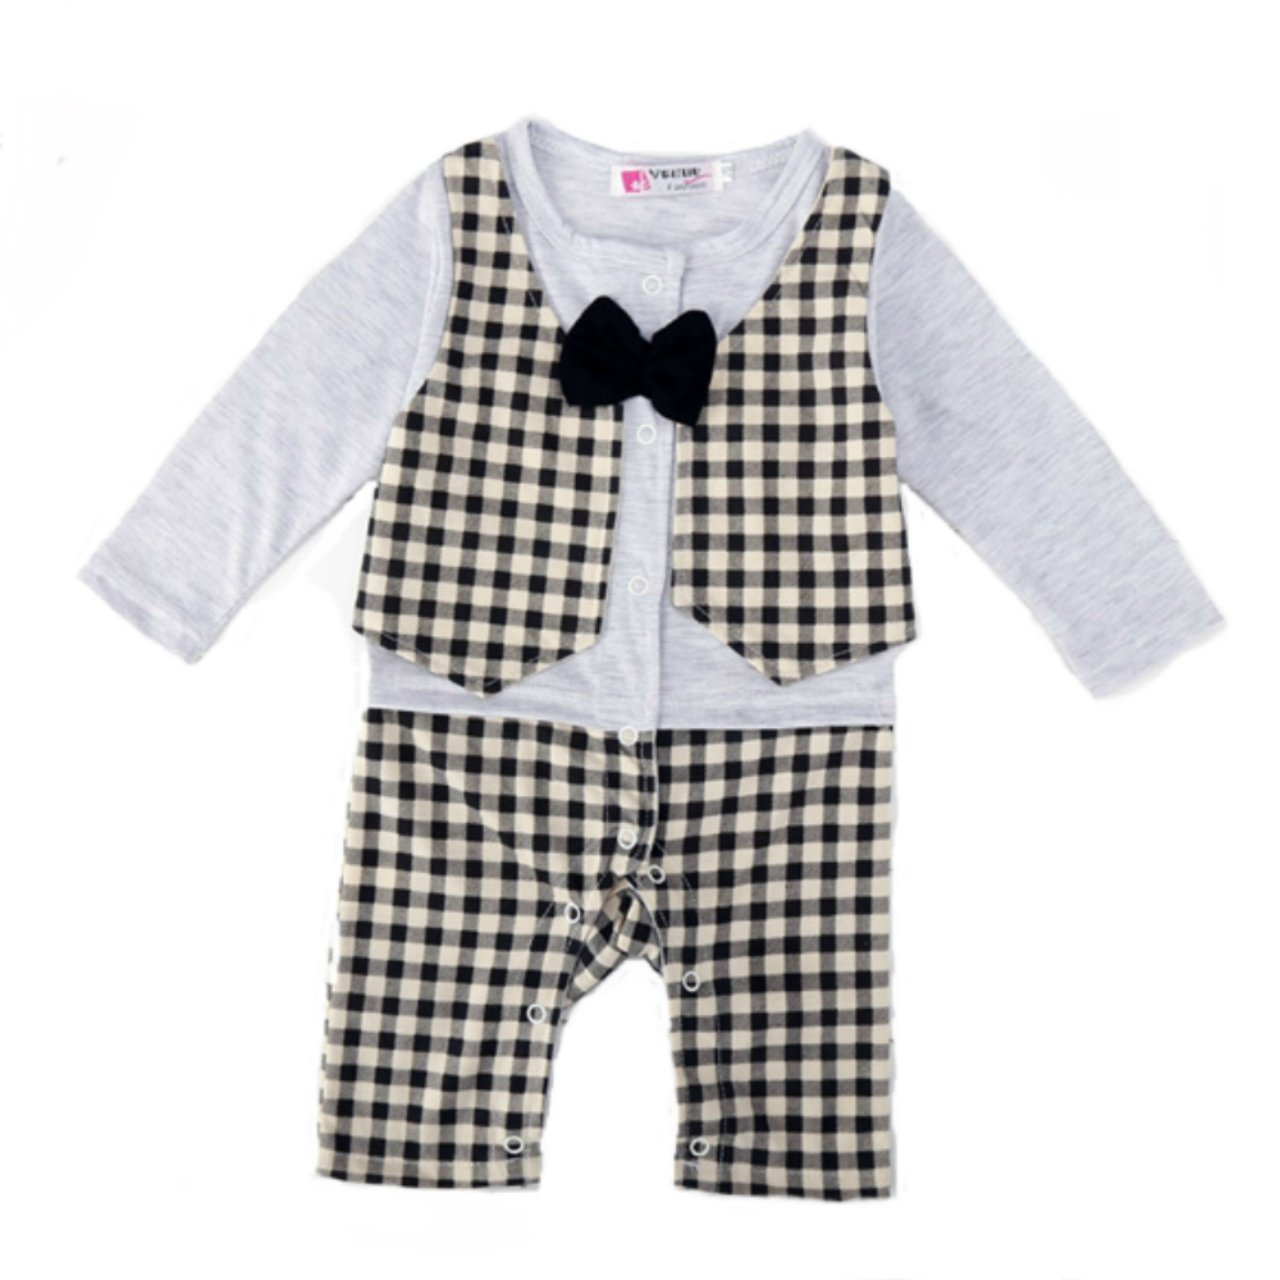 25e8c4e6664b Amazon.com  Baby Boy s Checked Long Sleeve Bow Tie Rompers Suit (80 (Fits  3-6 Months))  Clothing